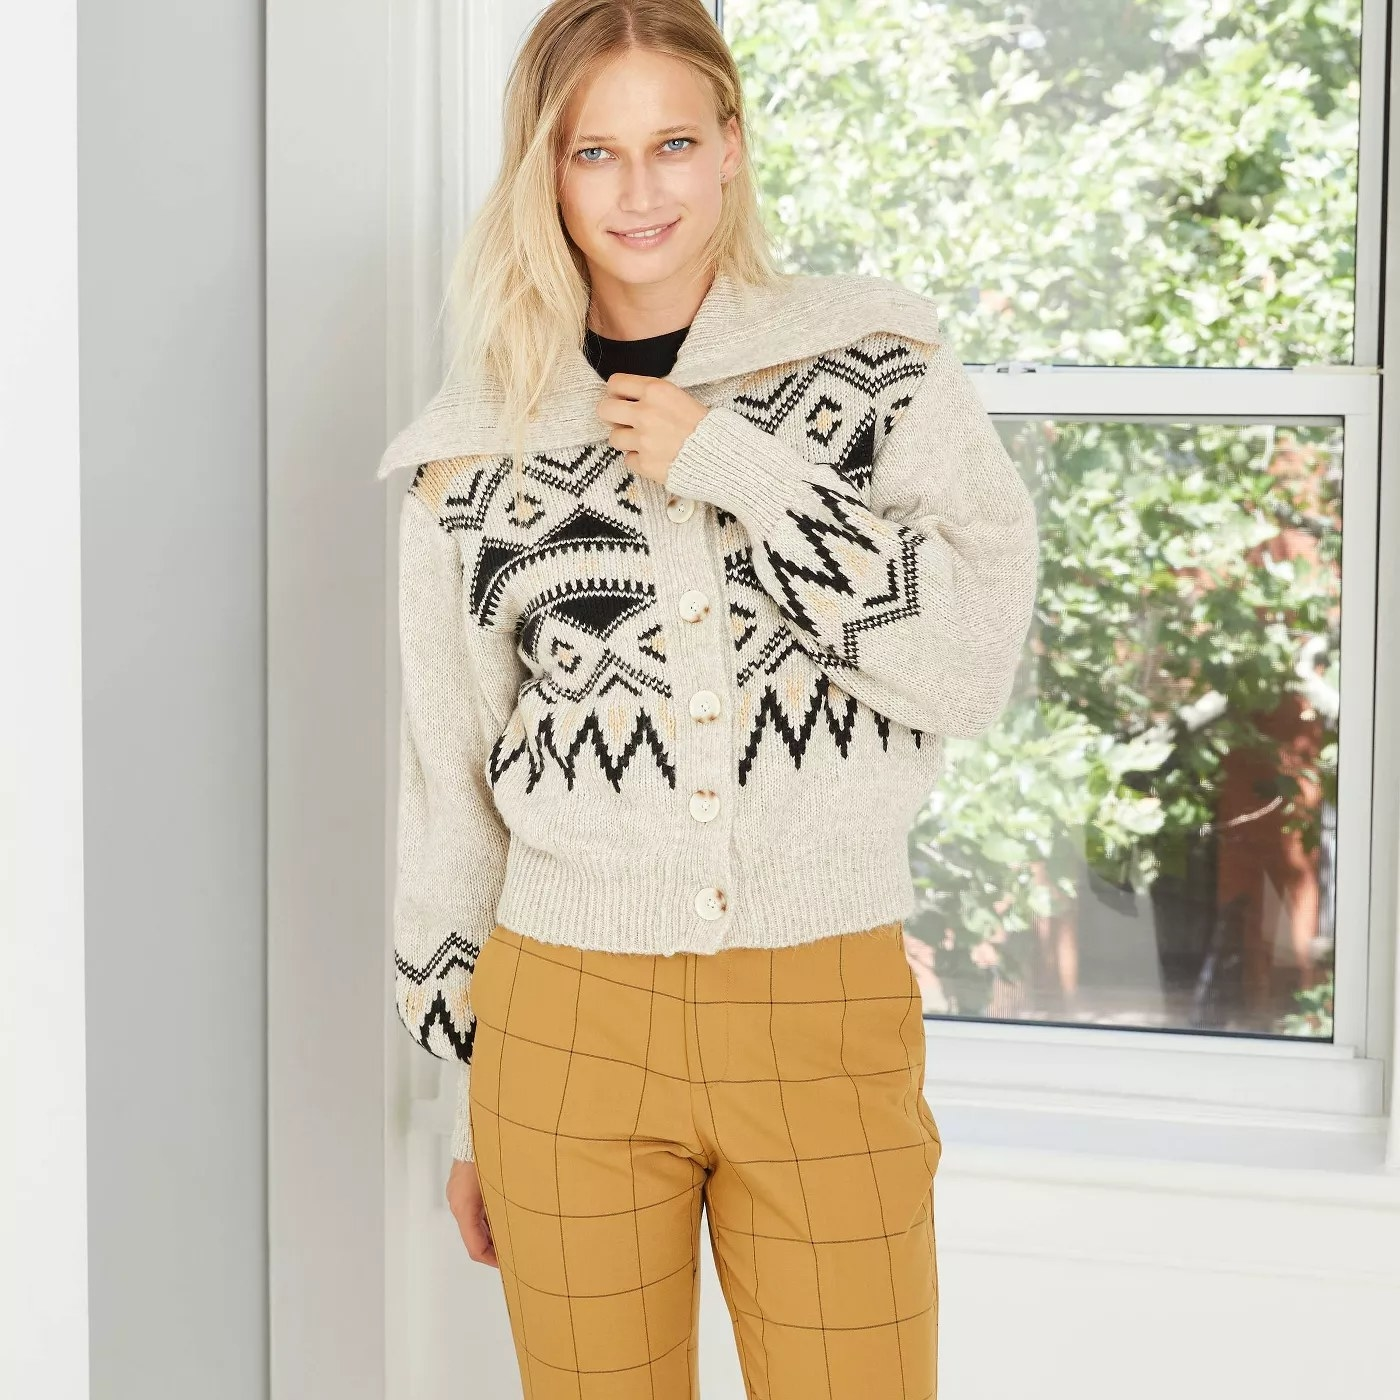 A buttoned off-white sweater with a black triangular pattern paired with mustard yellow pants.